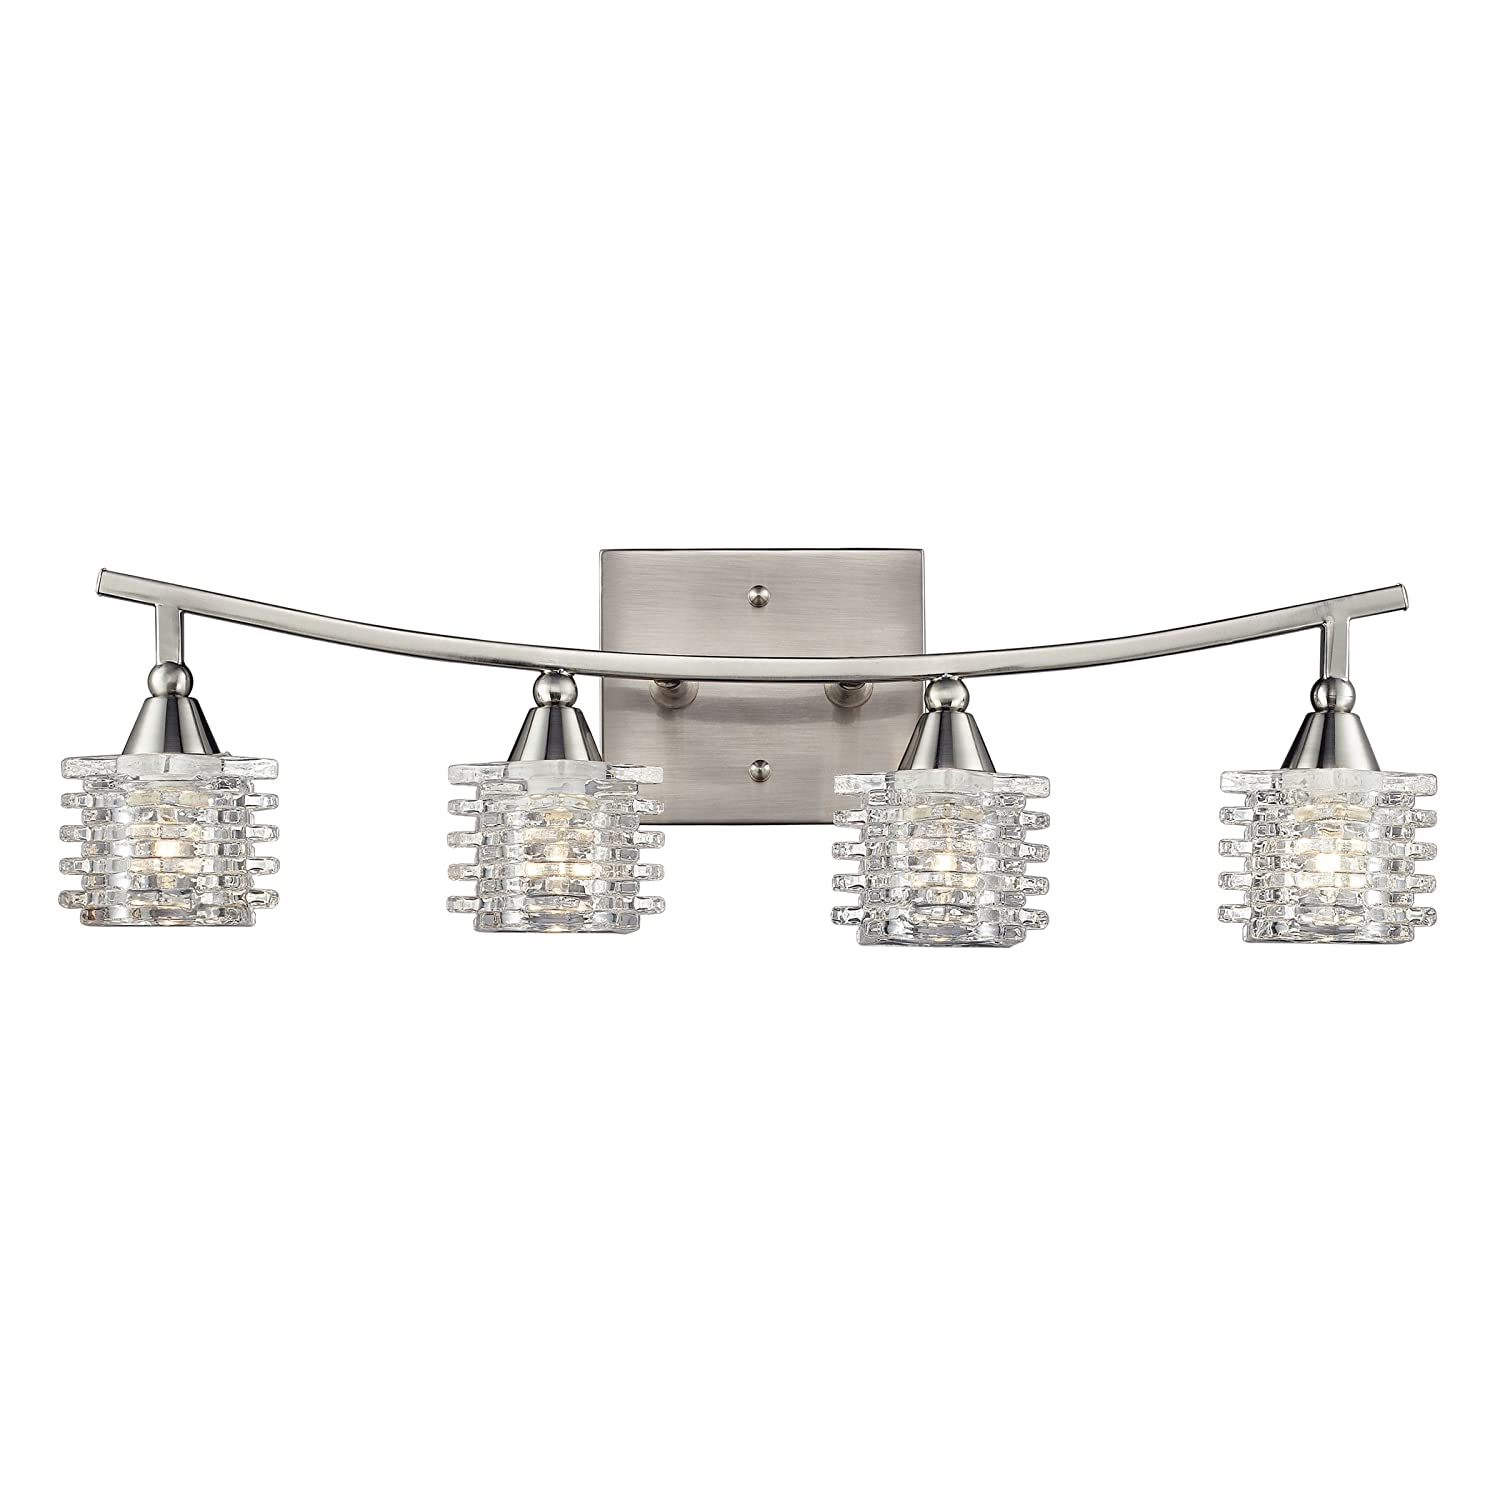 Bath Bar Lights Elk lighting 171324 matrix four light bath bar satin nickel elk lighting 171324 matrix four light bath bar satin nickel vanity lighting fixtures amazon audiocablefo